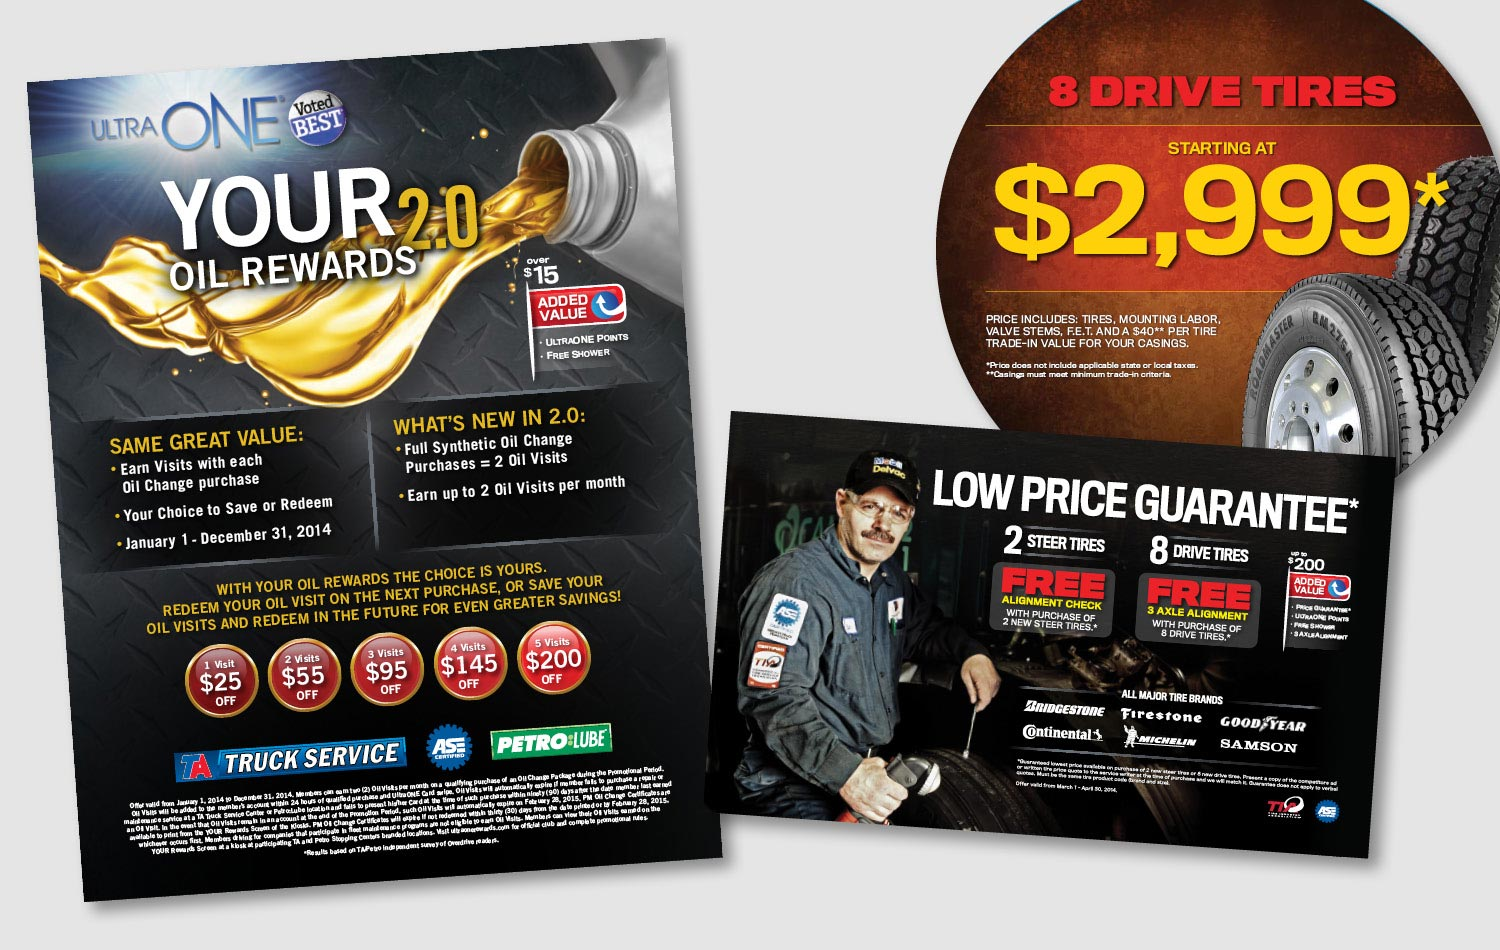 These are a few samples of Truck Service pieces done for TA and Petro Stopping Centers. They offered special discounts on tires, repair and maintenance services or had reward programs for oil changes. The campaigns targeted the trucking industry portion of the Travel Centers of America business with a masculine appeal. Campaign pieces included ads, flyers, point of purchase signs, pumptoppers, etc.      work completed for Full Circle Creative